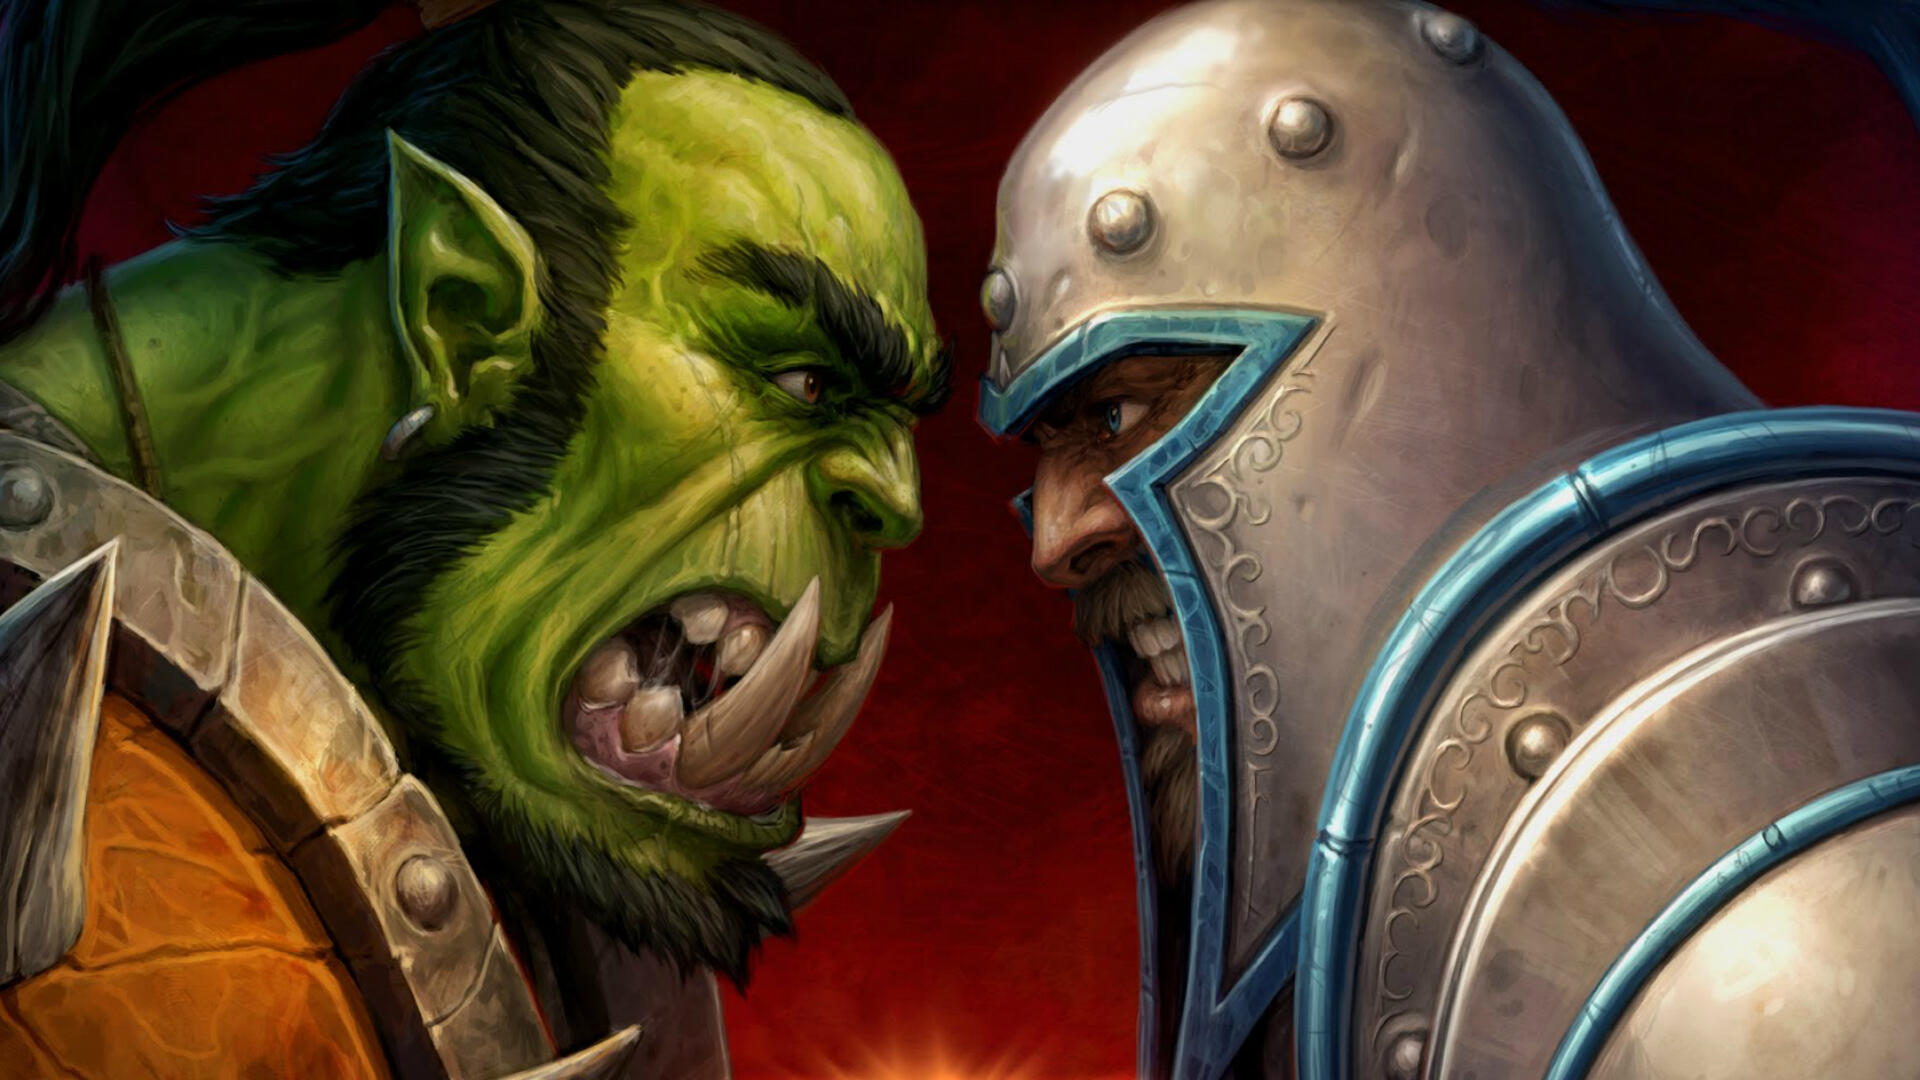 How Warcraft's Art Has Evolved and Shaped Blizzard's Games